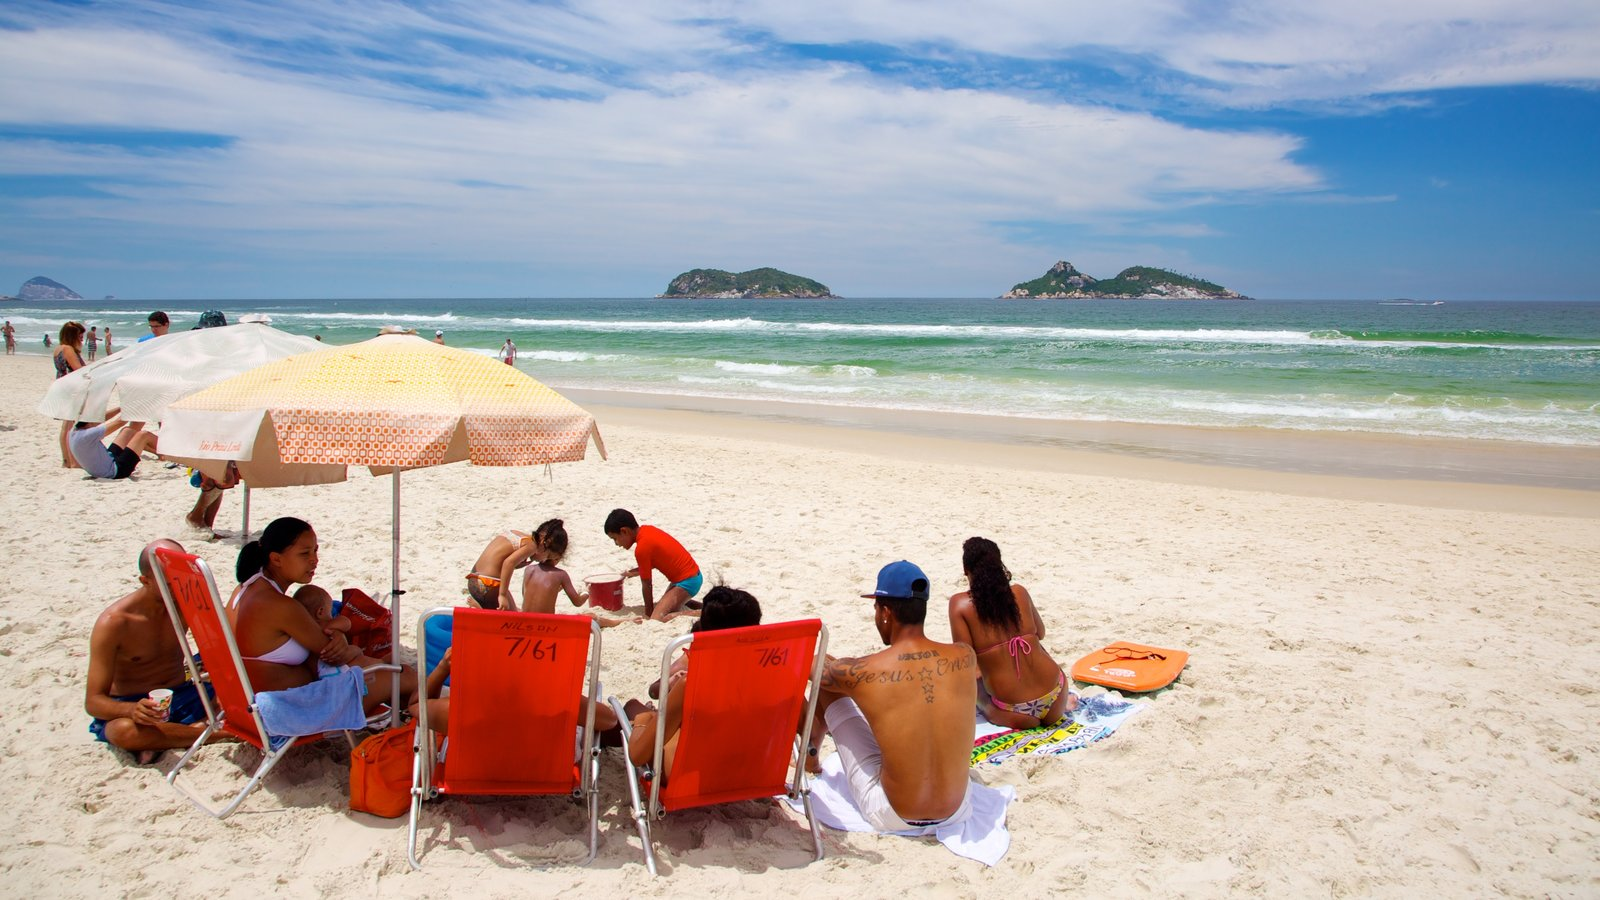 Barra da Tijuca which includes a sandy beach as well as a family